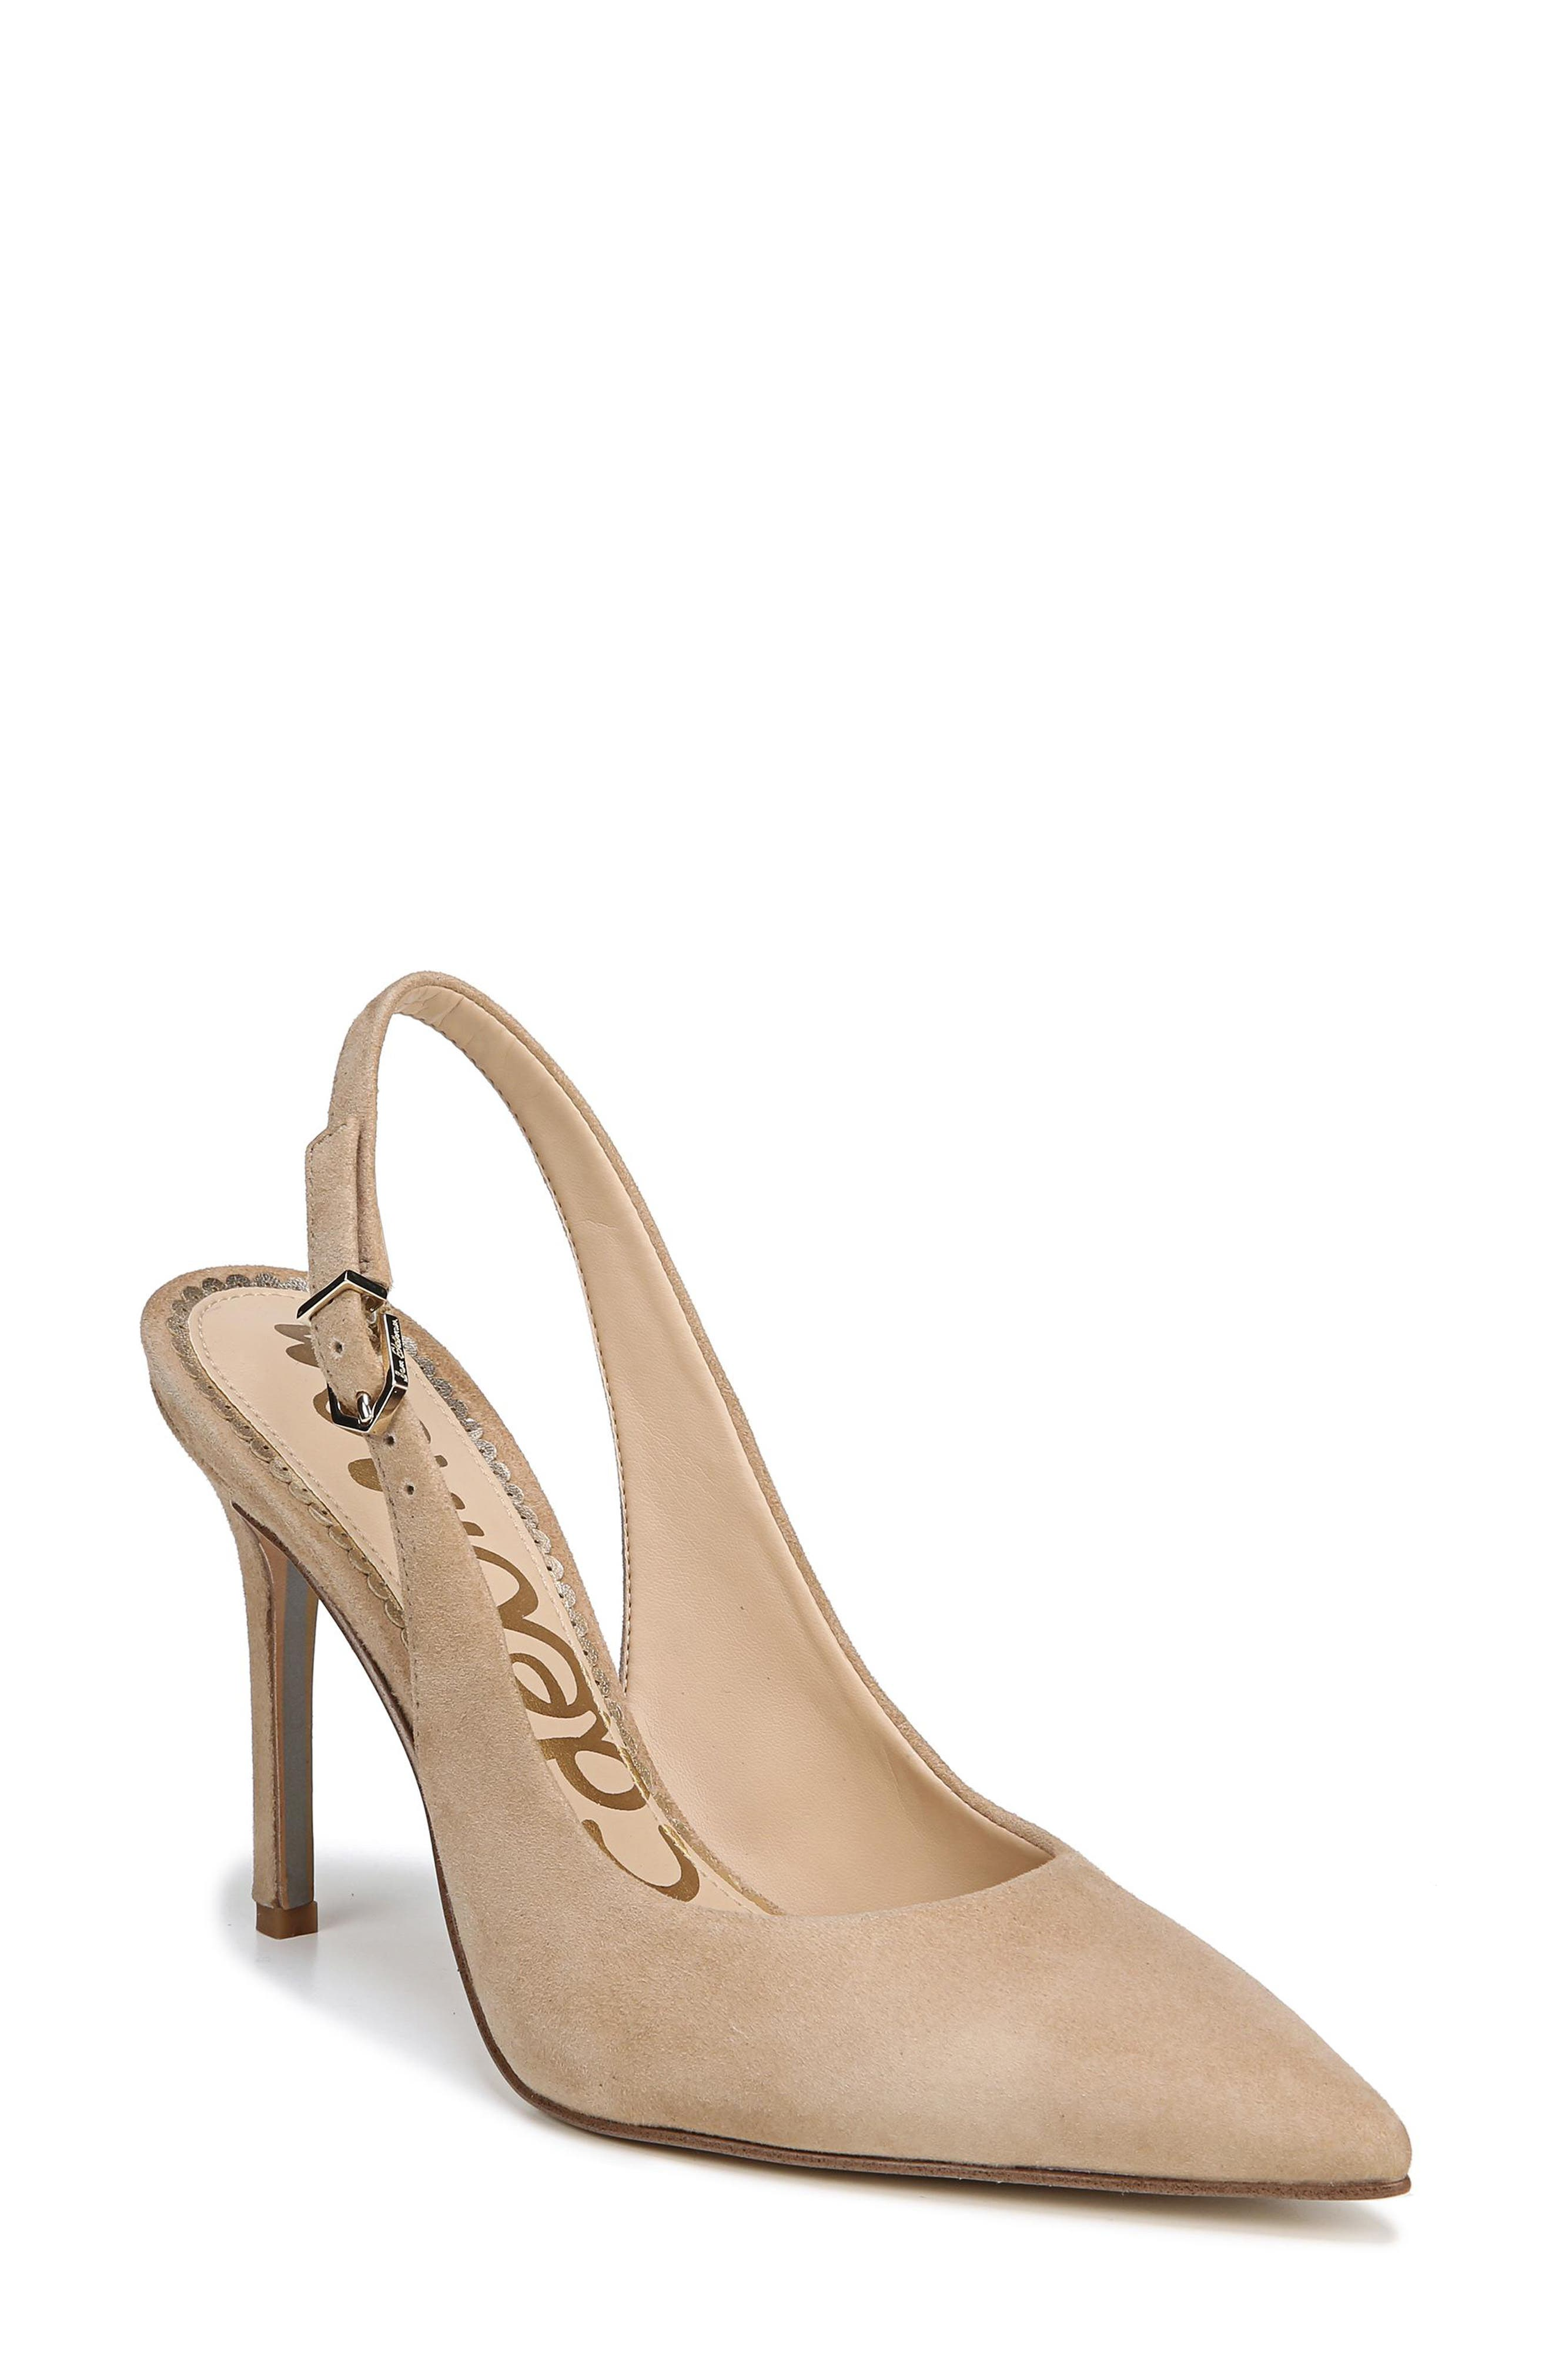 Hastings Slingback Pump,                             Main thumbnail 1, color,                             OATMEAL SUEDE LEATHER